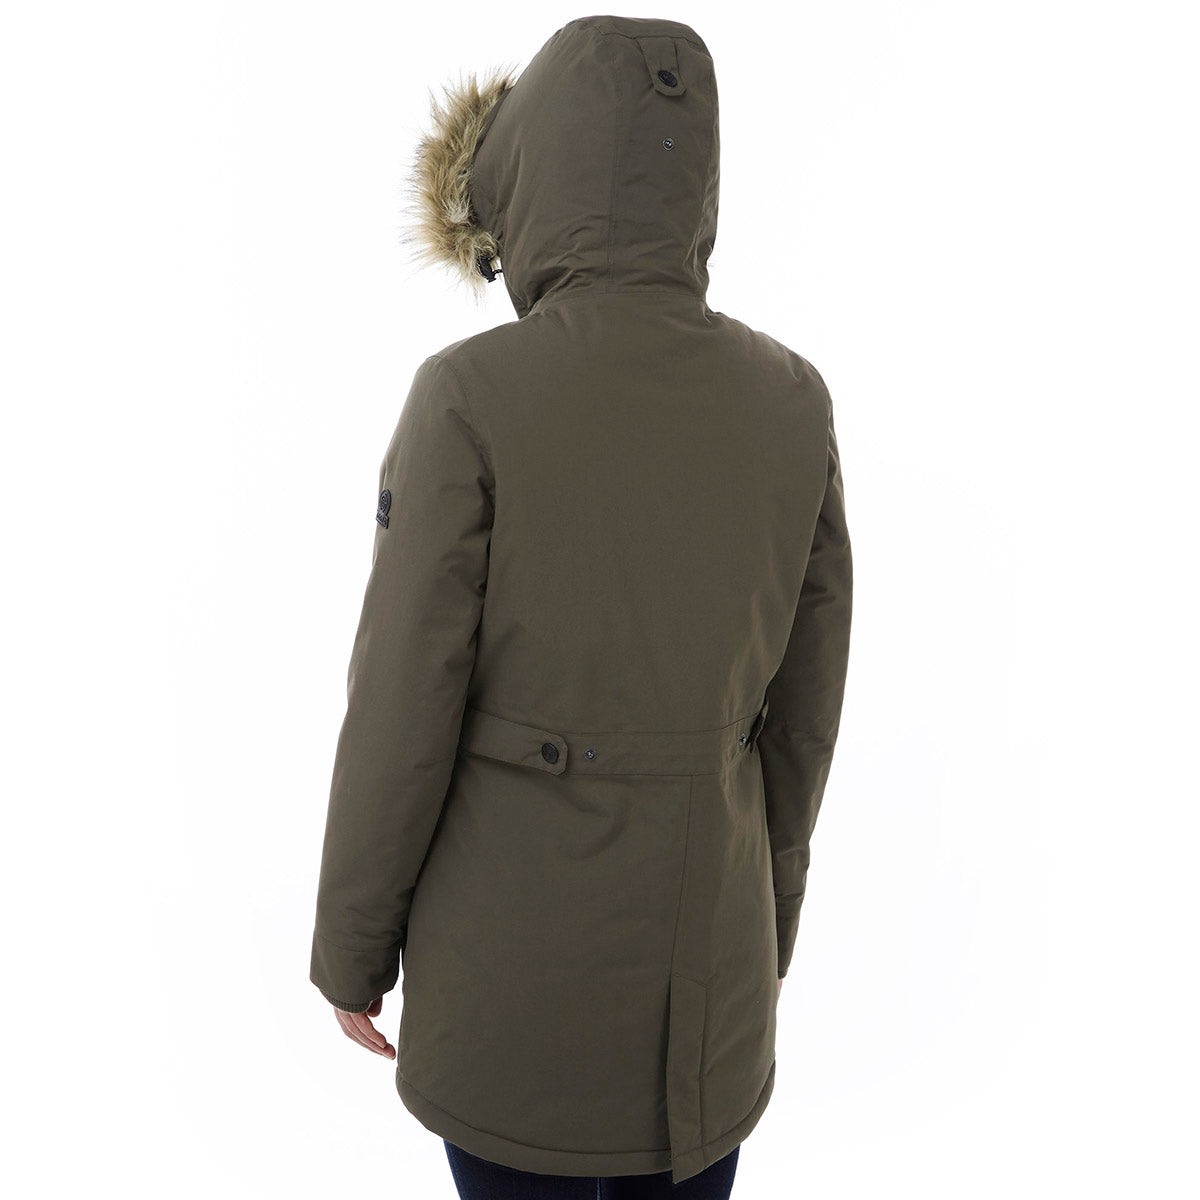 Superior Womens Milatex Jacket - Dark Khaki image 4